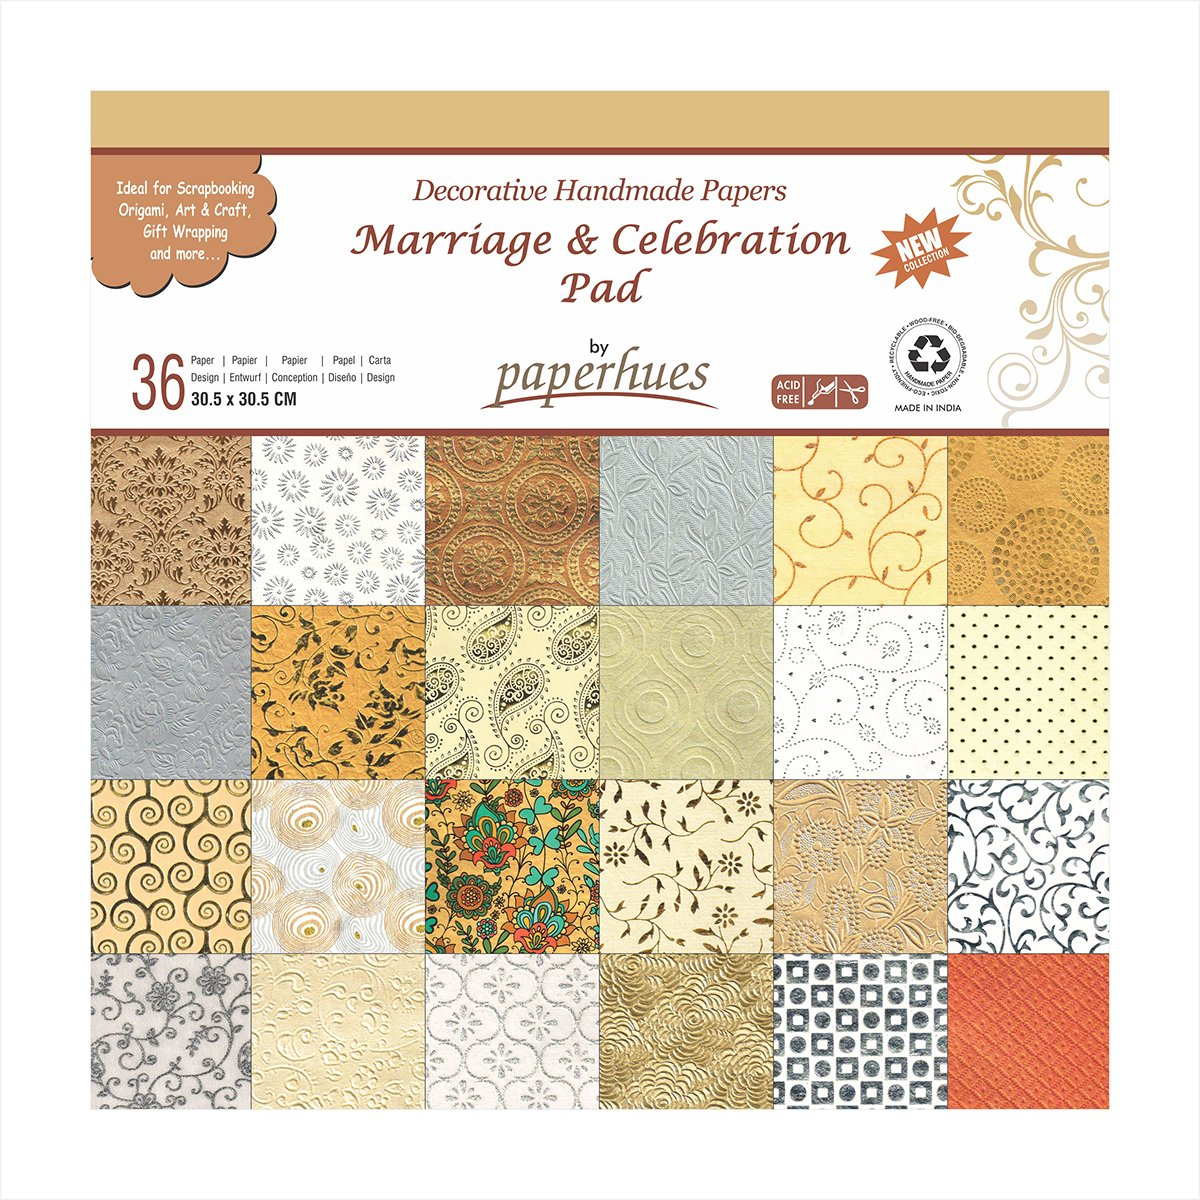 Scrapbook paper pads - Amazon Com Paperhues Wedding Scrapbook Paper 12x12 Pad 36 Sheets Celebration Pad Decorative Specialty Handmade Origami Paper Pad For Wedding Cards